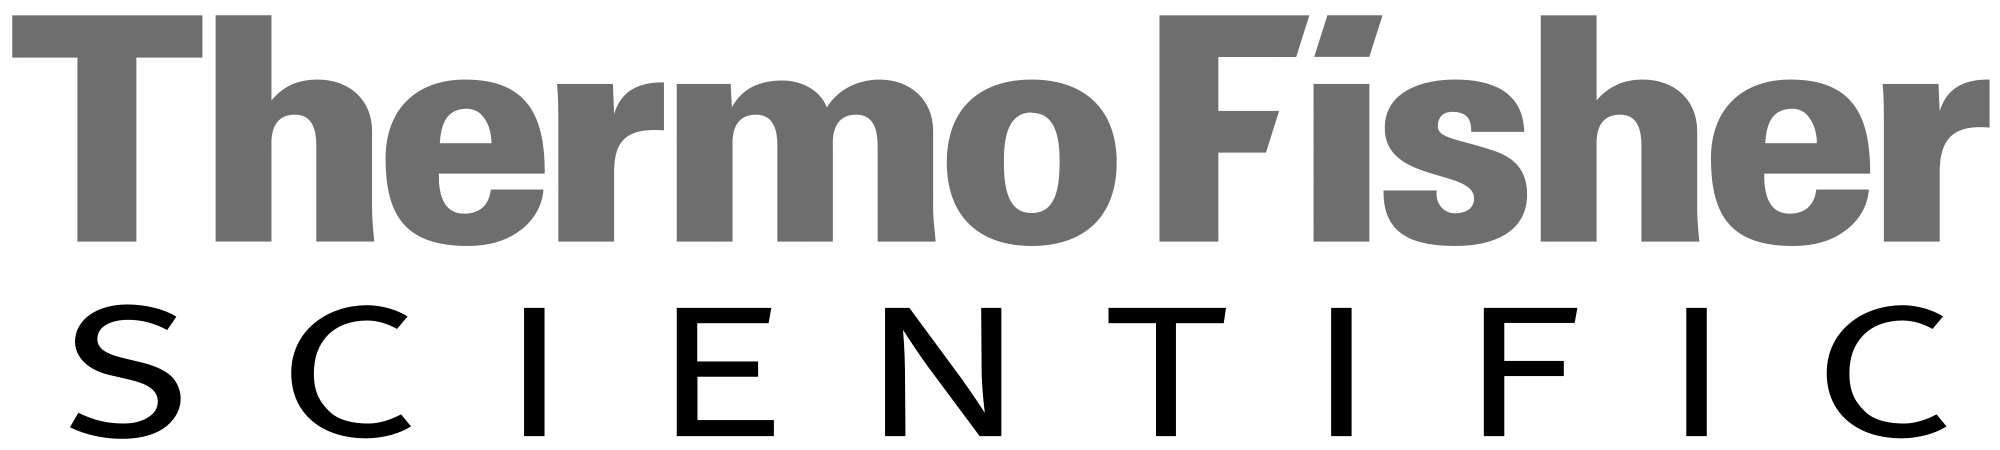 aaron_feinberg_consulting_client_Thermo_Fisher_Scientific_logo.png